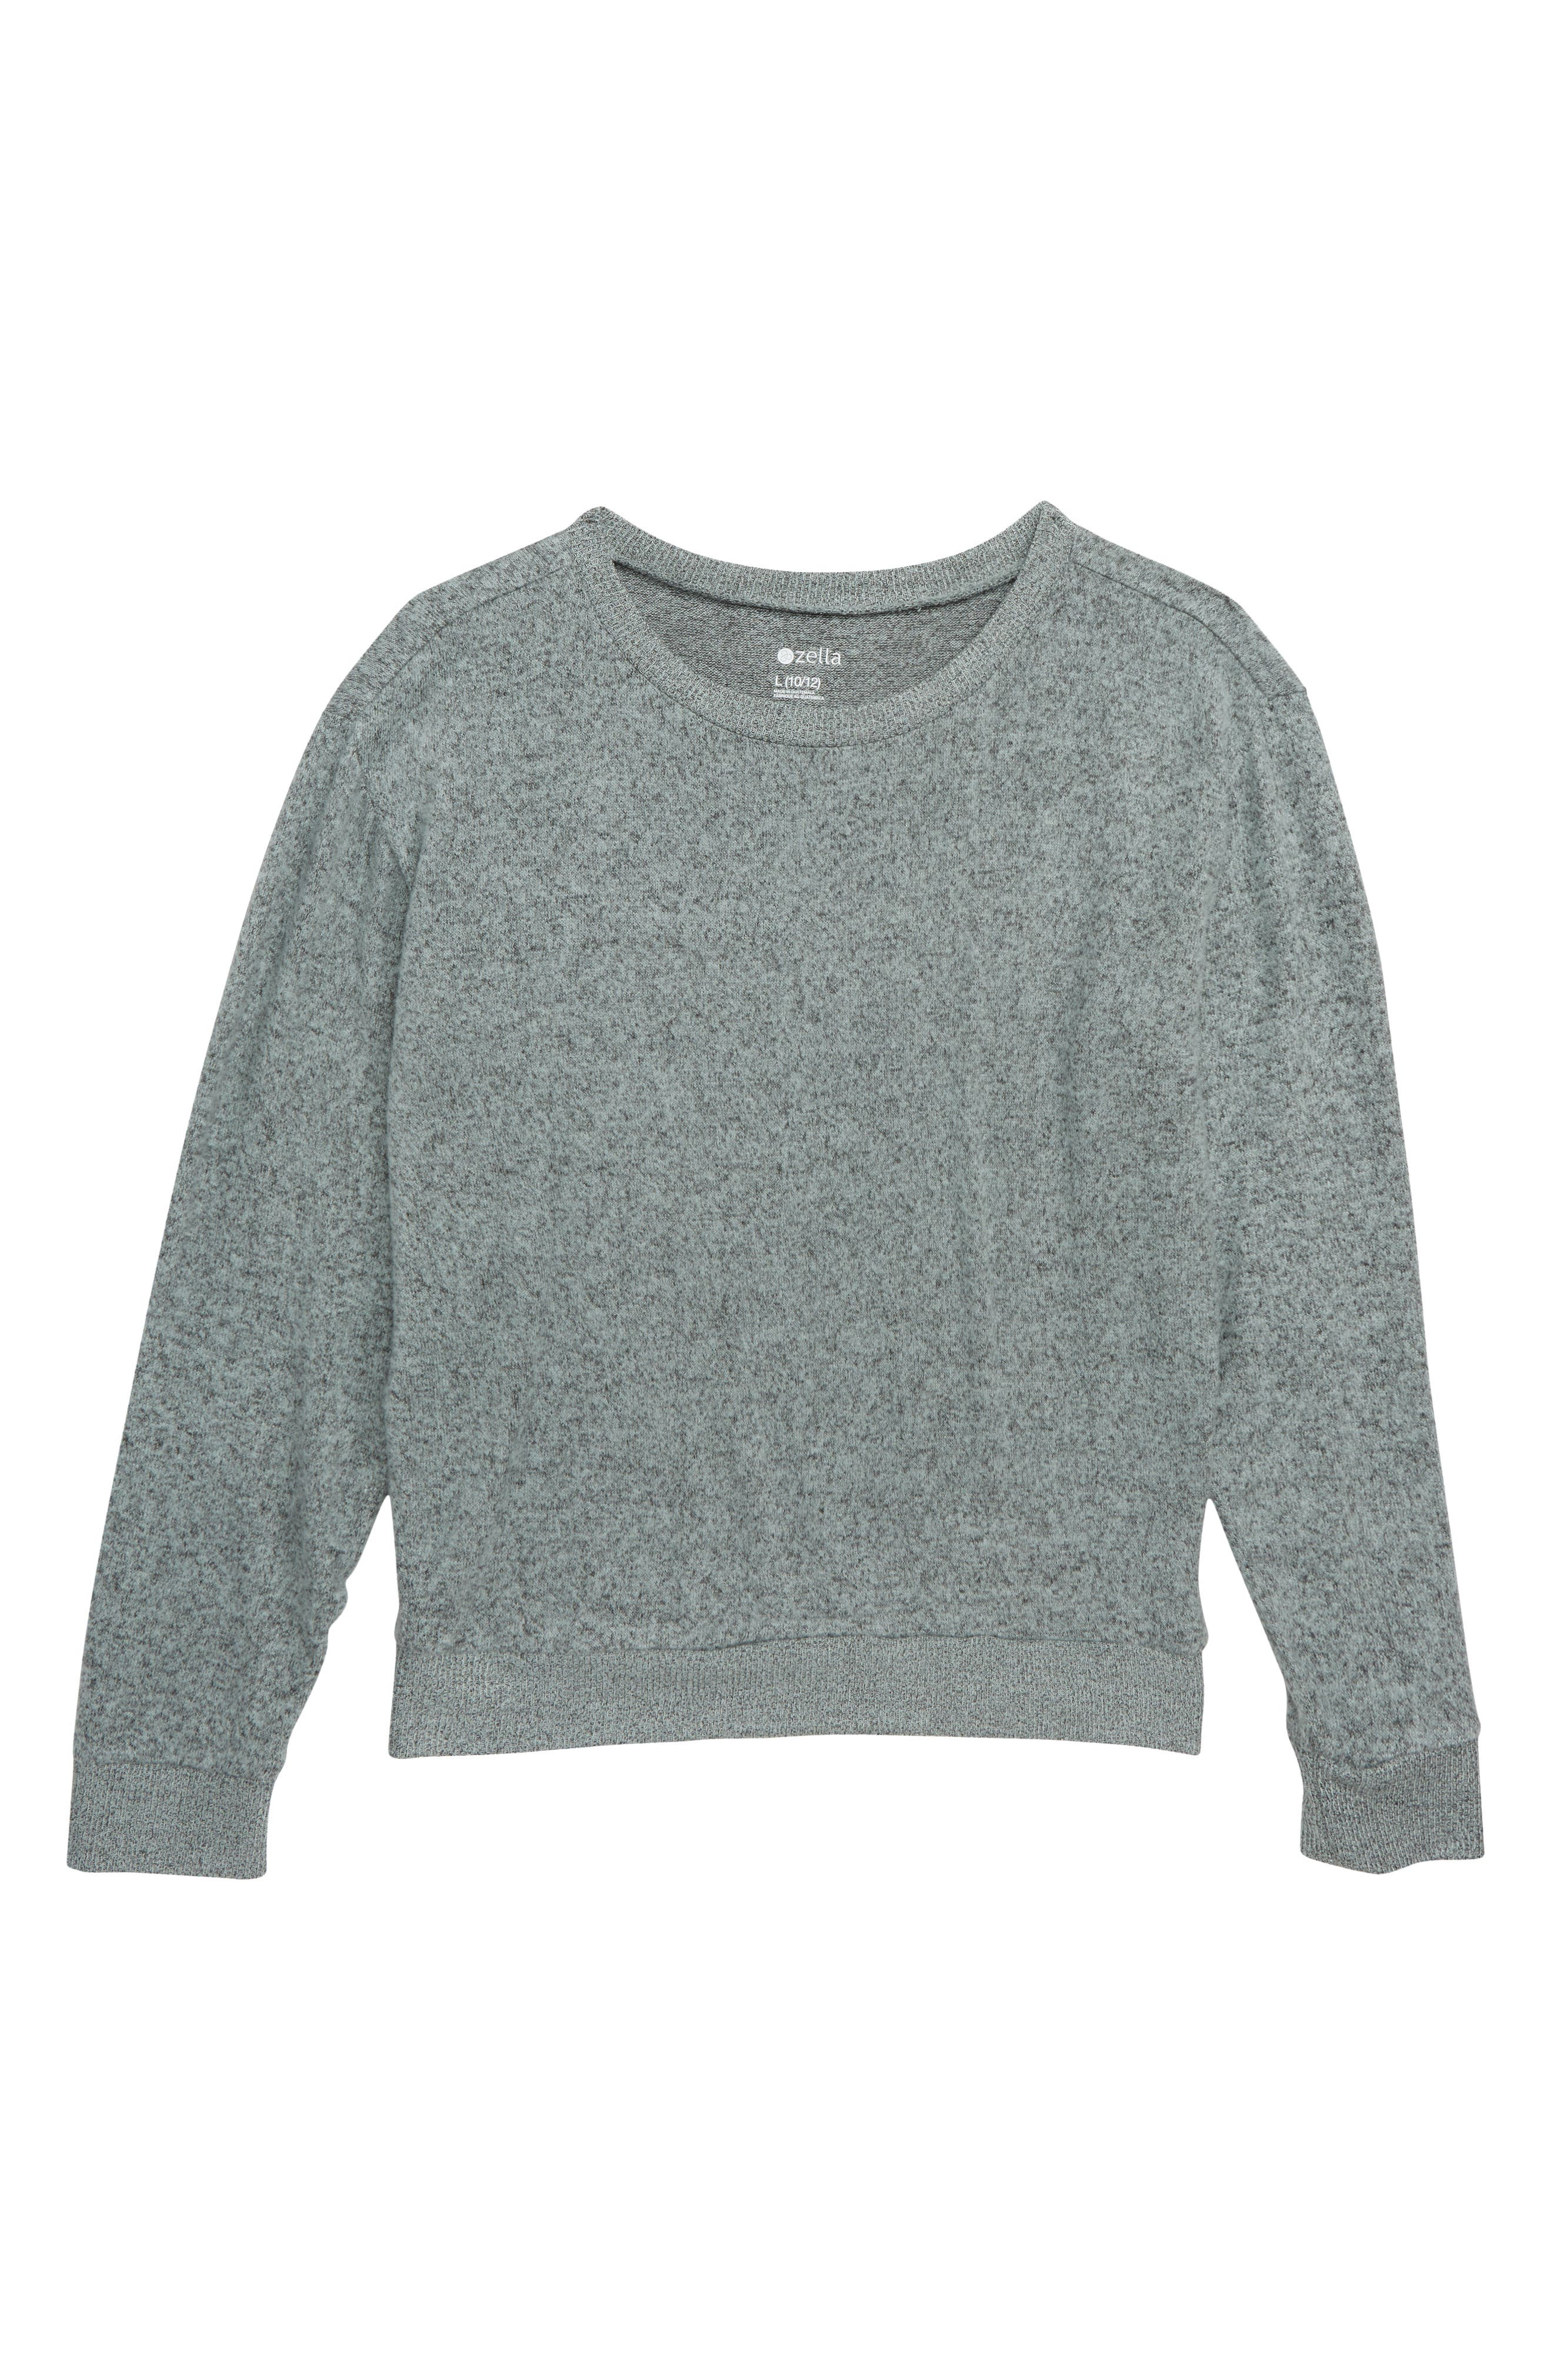 Supersoft Sweater,                             Main thumbnail 1, color,                             001